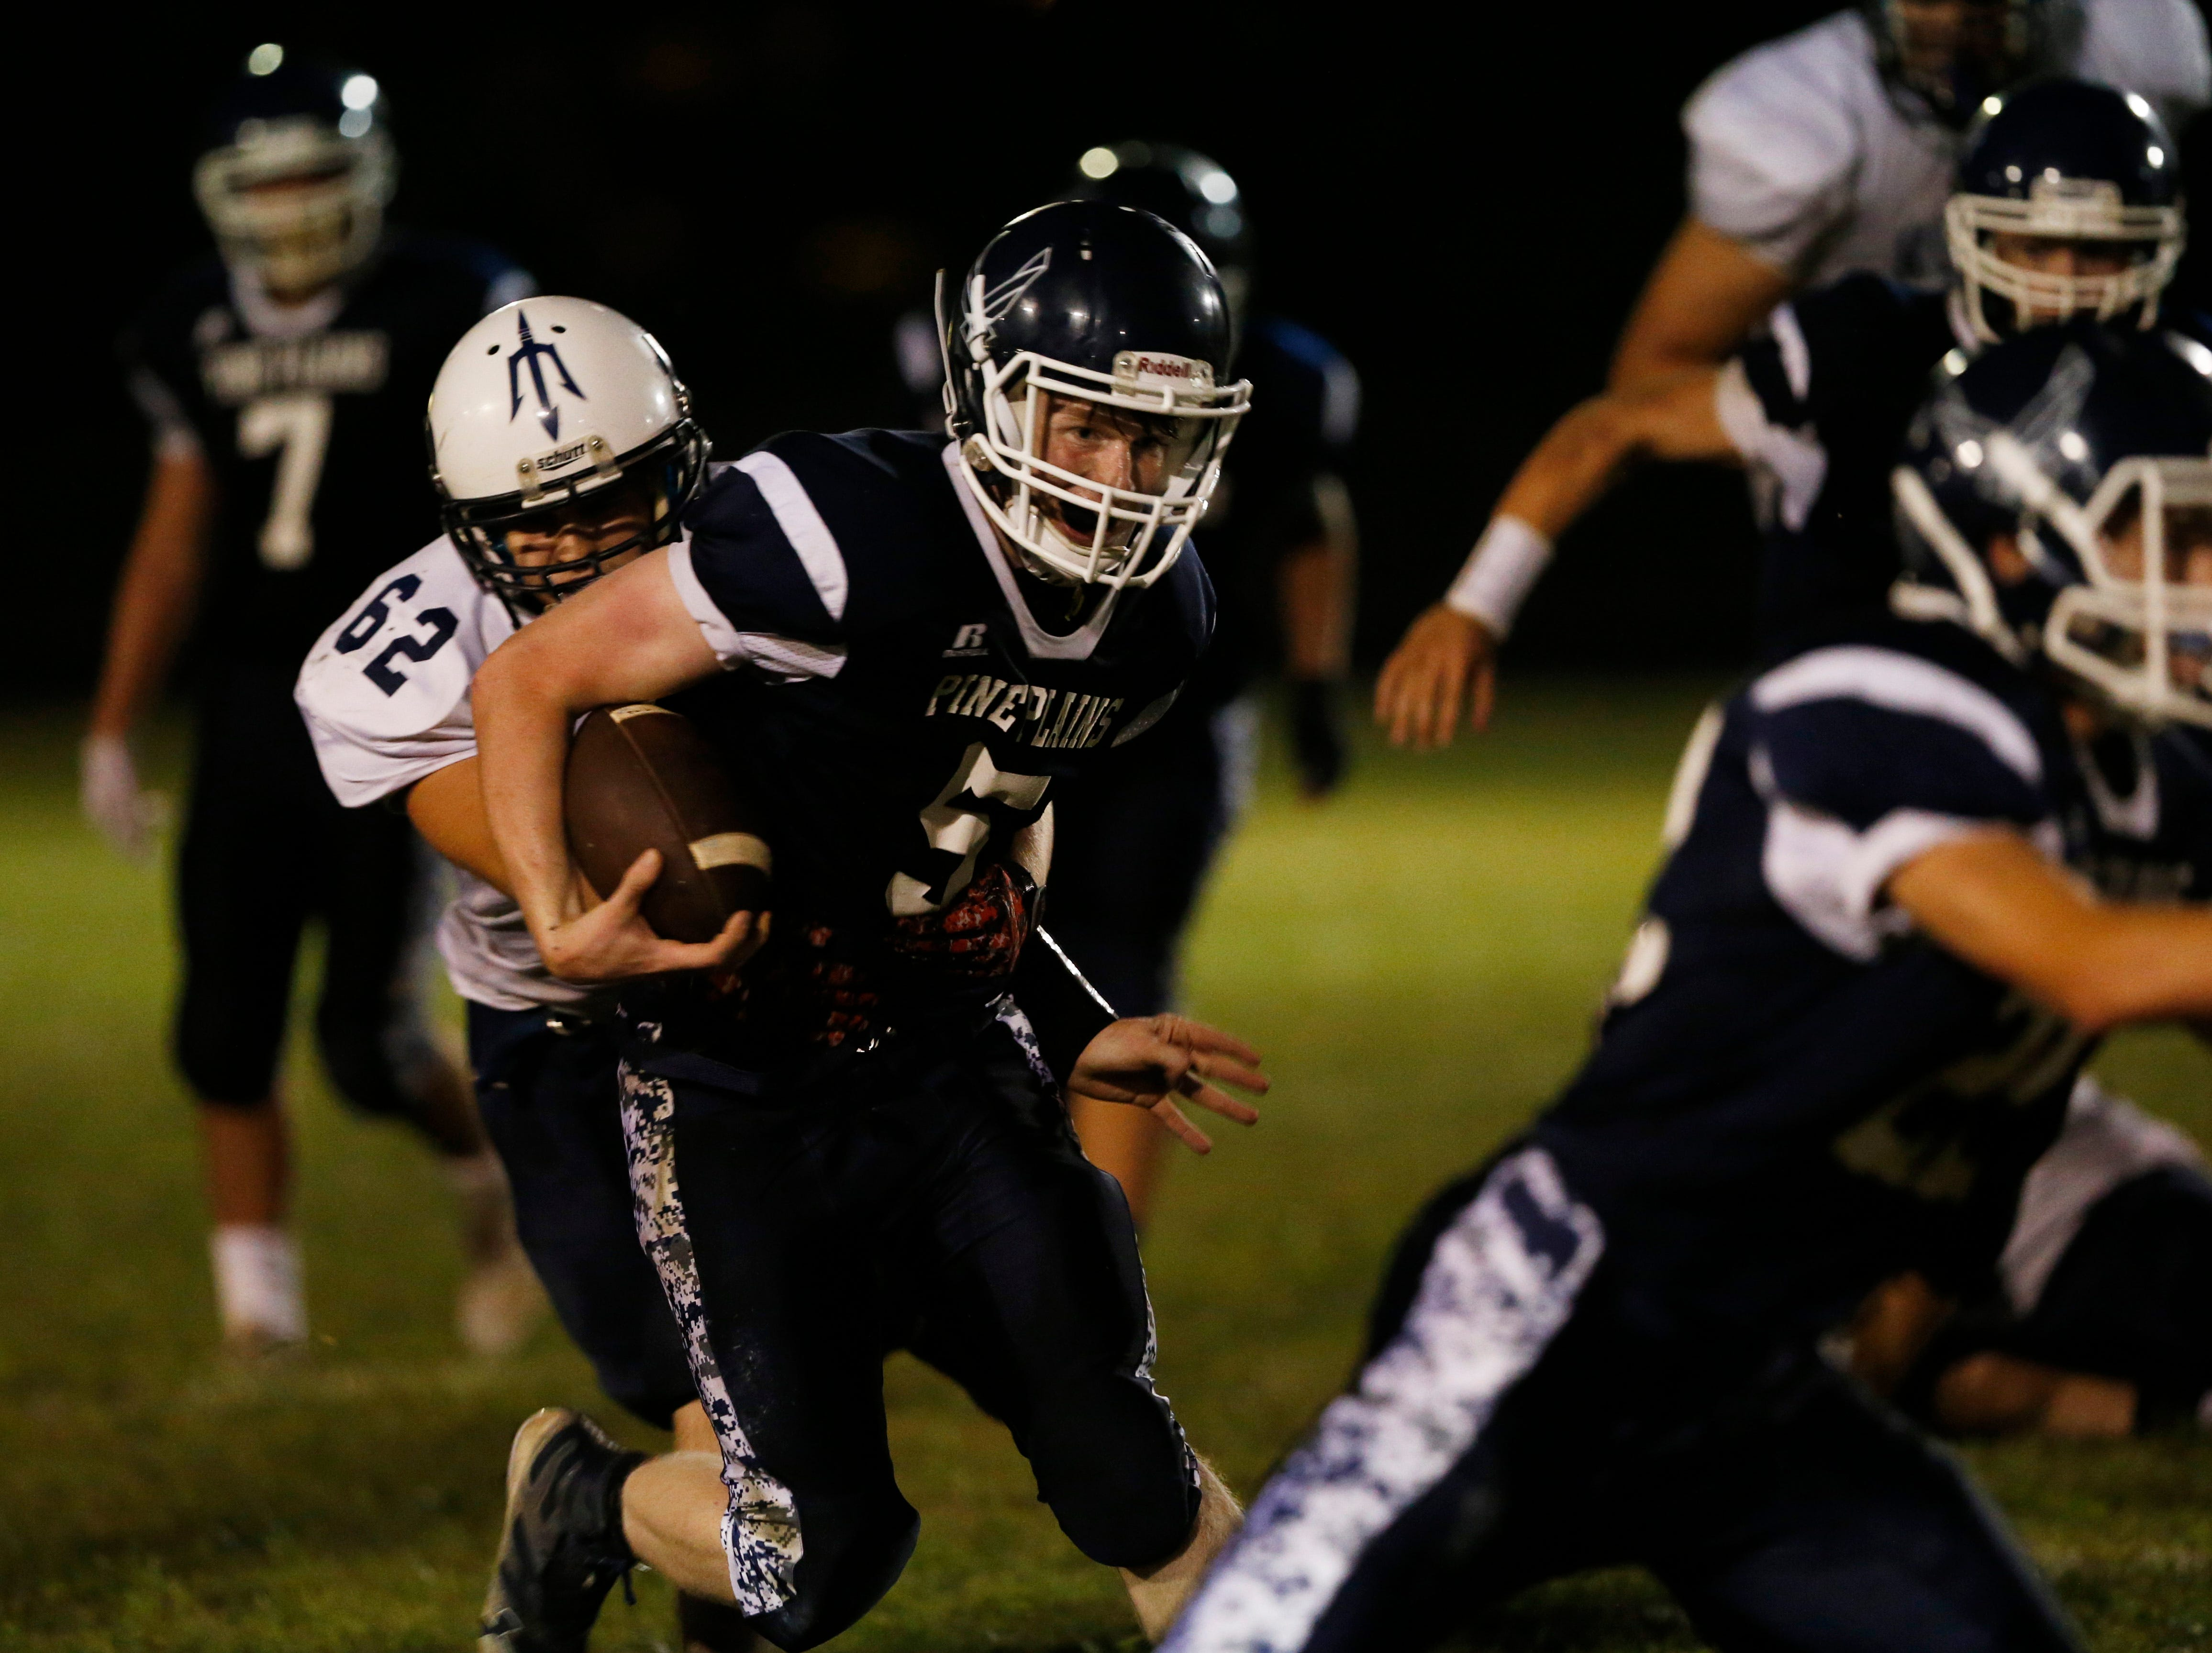 Action from Friday's game between Pine Plains and Roscoe at Stissing Mountain High School on September 7, 2018.